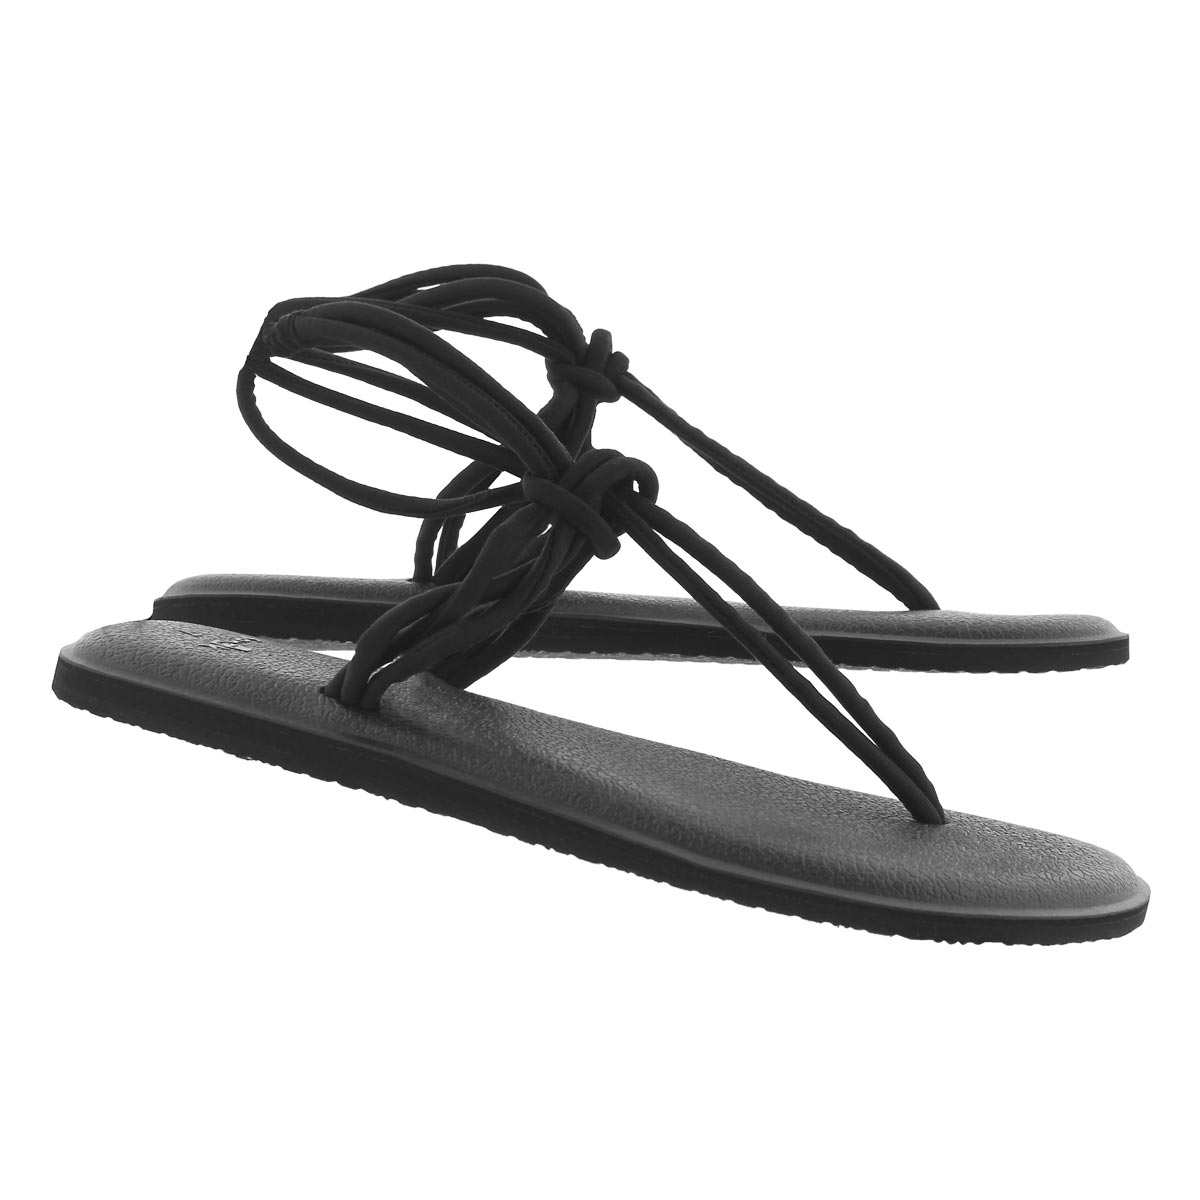 Lds Yoga Sunshine black thong sandal